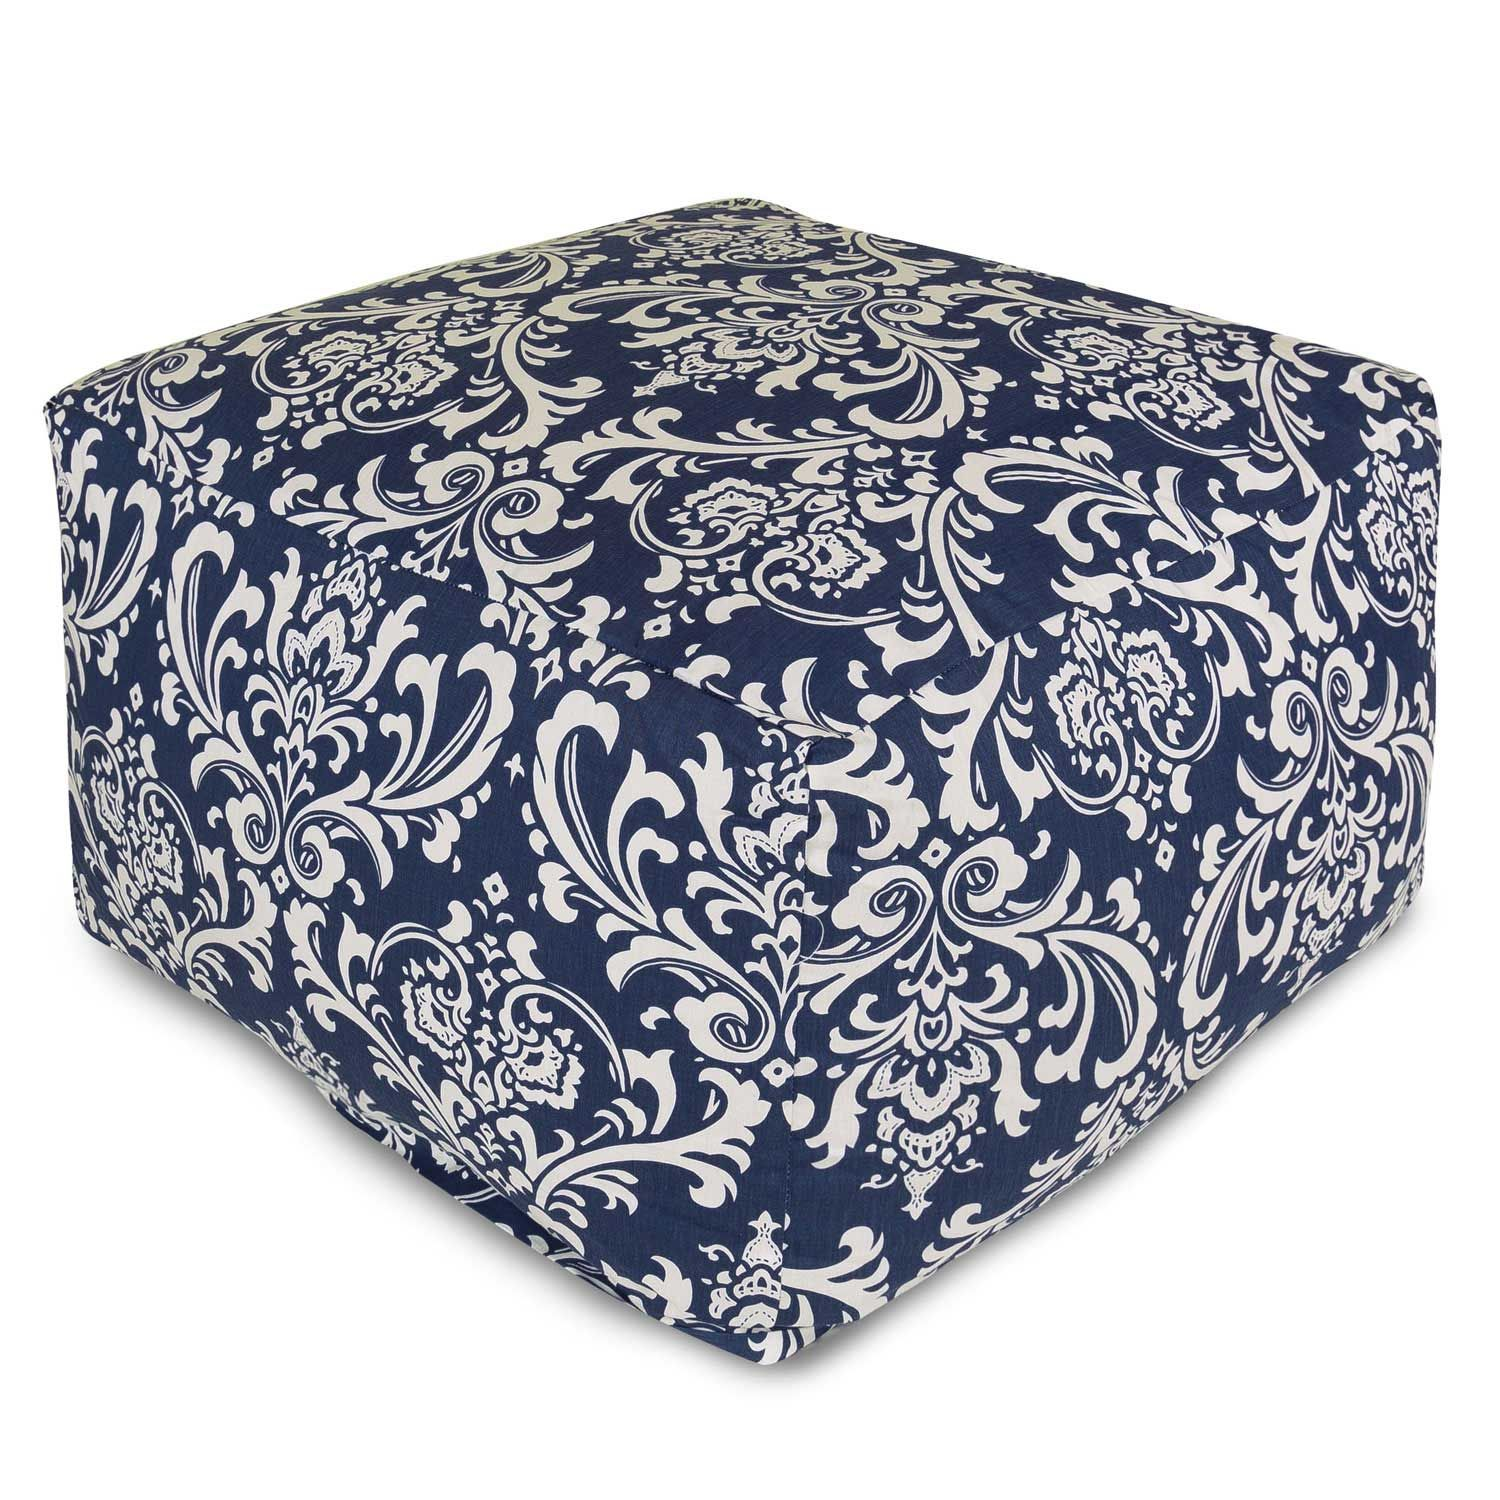 Large Printed Outdoor Ottoman